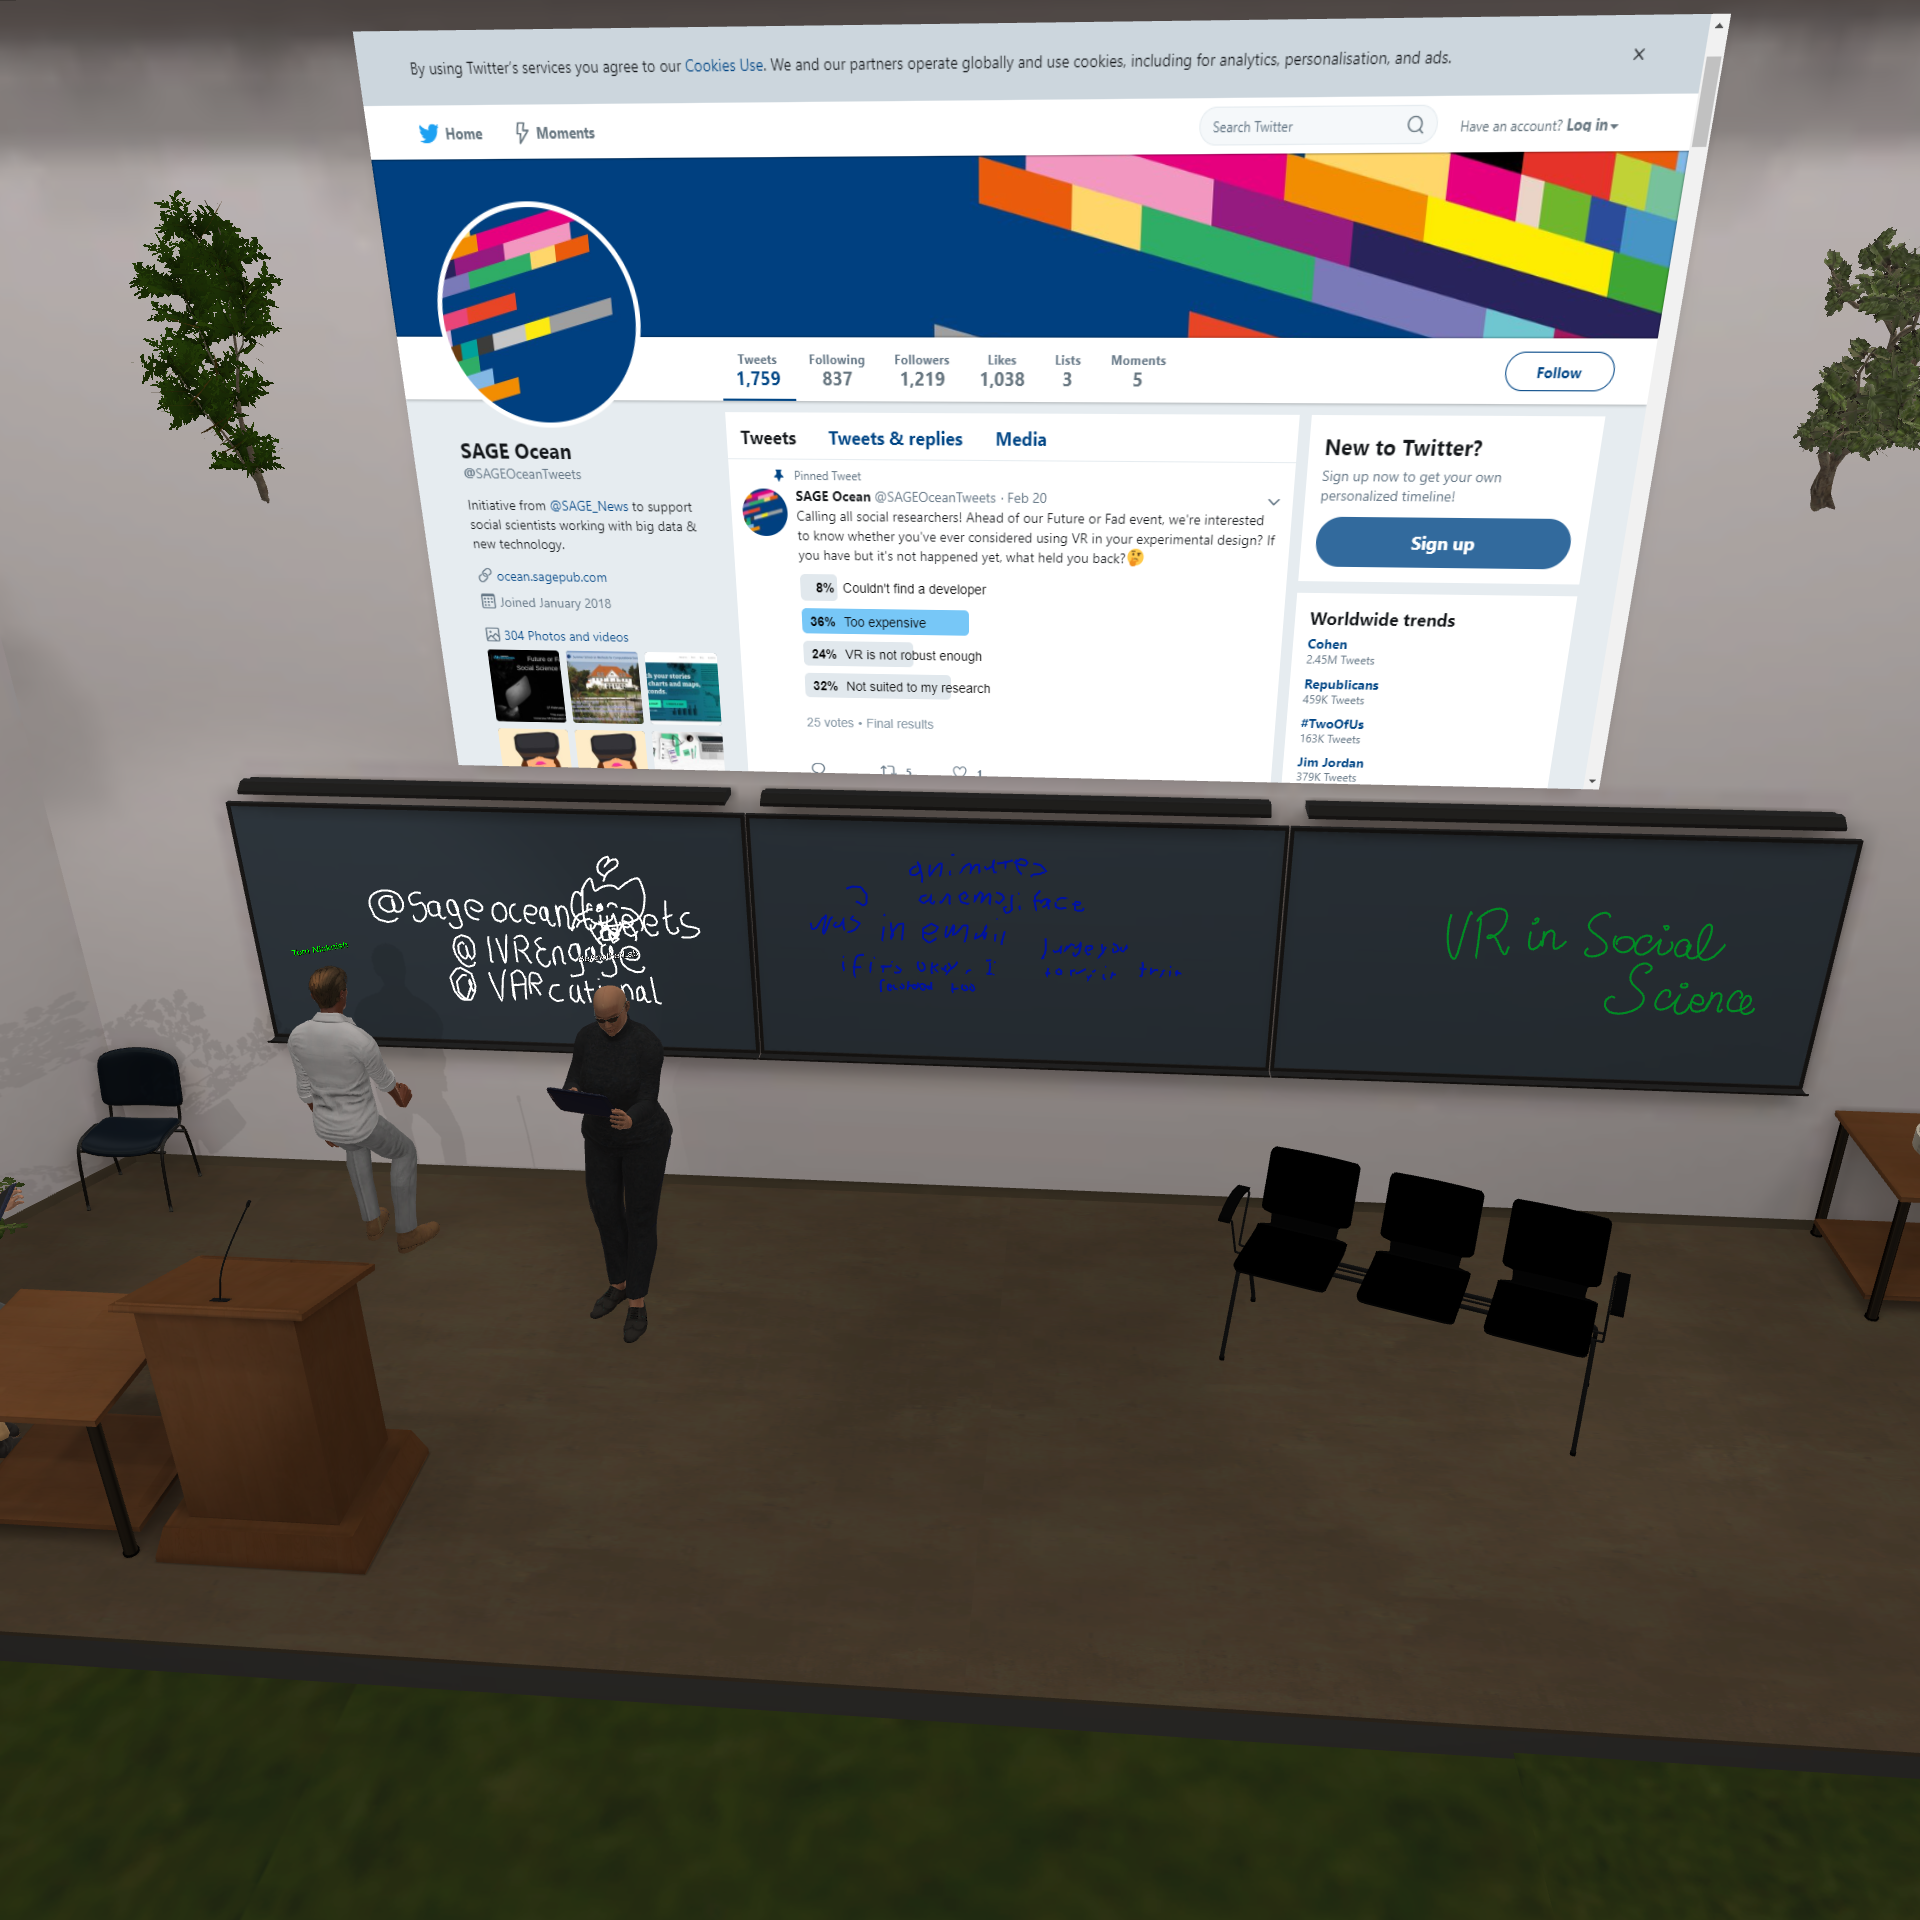 Virtual screen featuring the SAGE Ocean twitter page